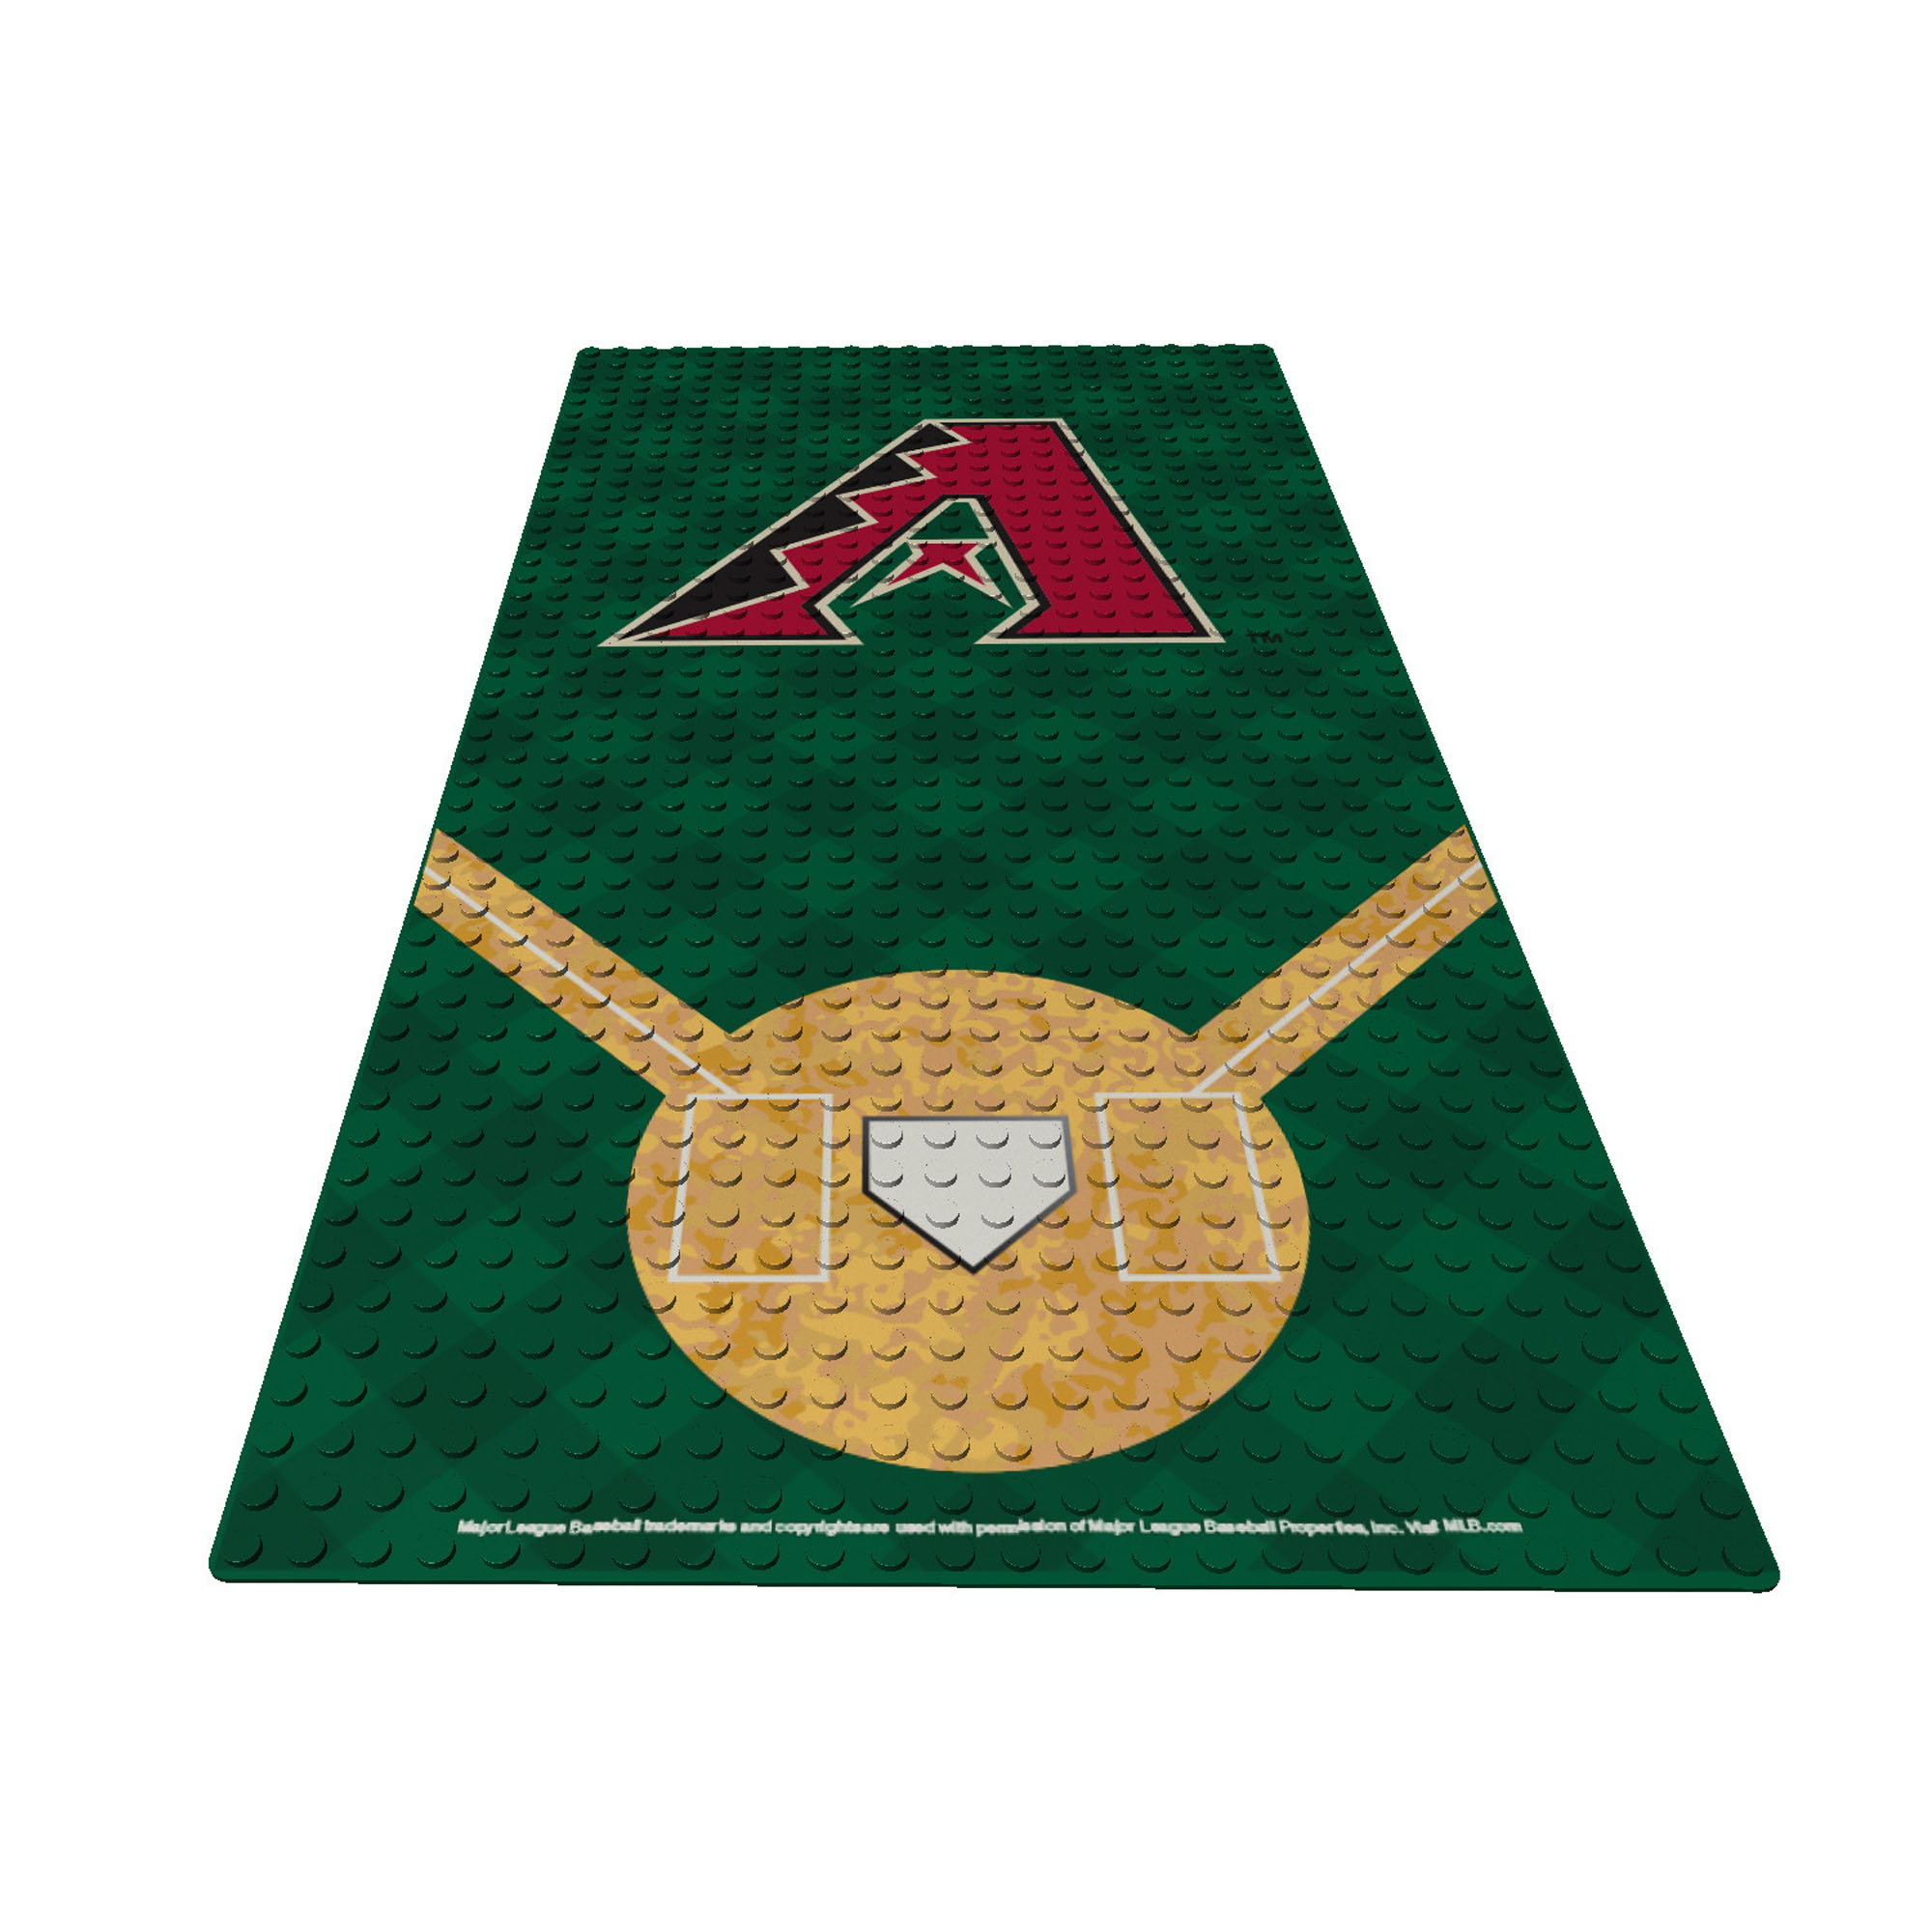 Arizona Diamondbacks OYO Sports Display Plate - No Size